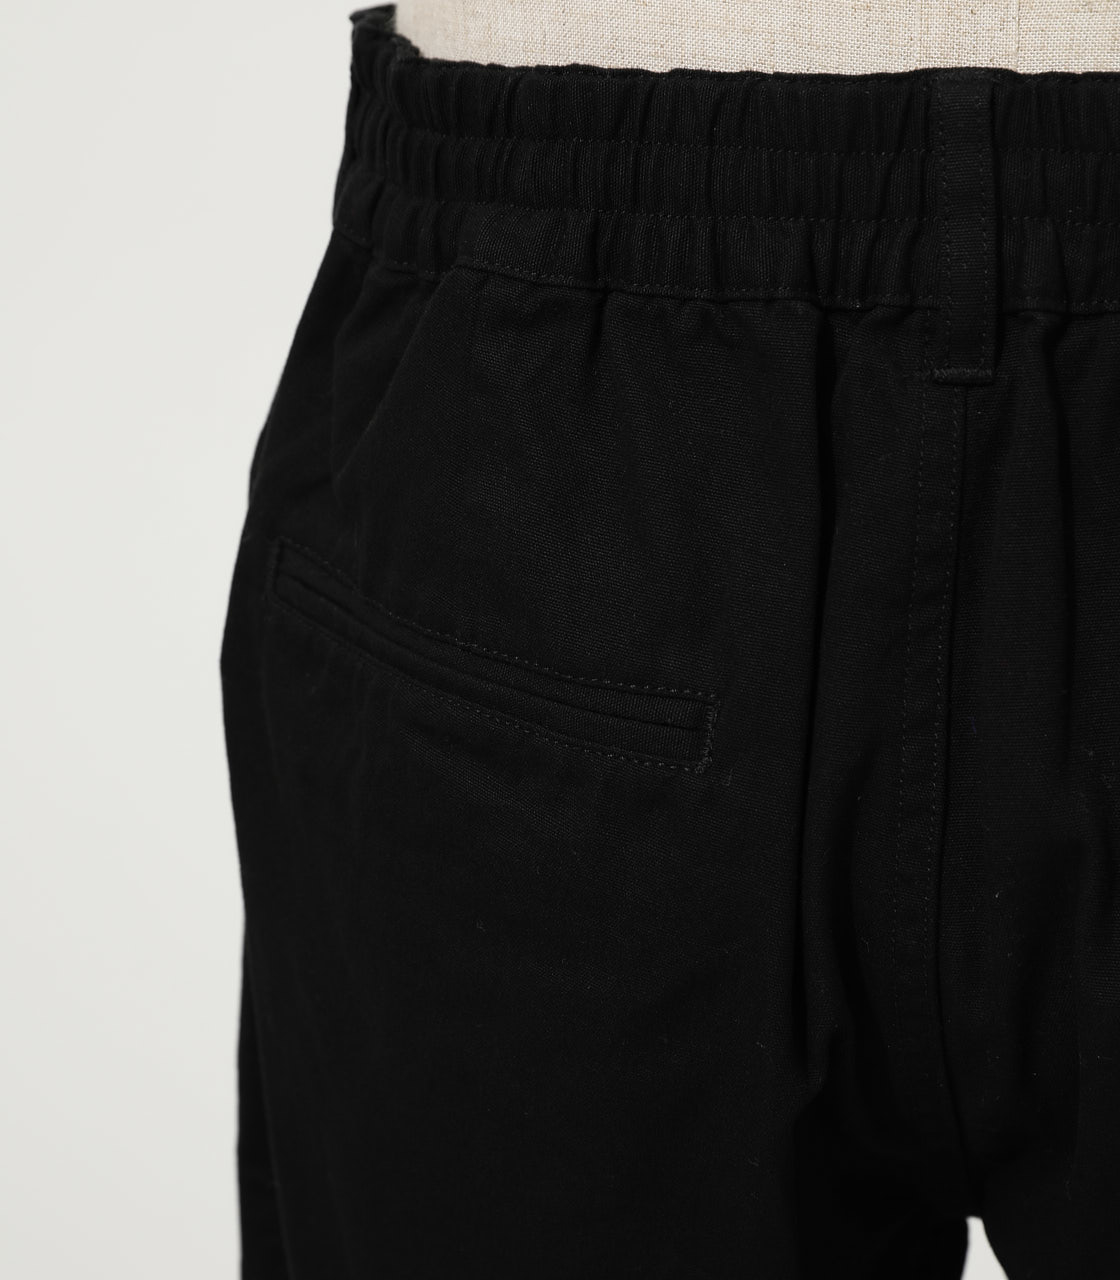 TWILL COLOR SHORTS 詳細画像 BLK 6